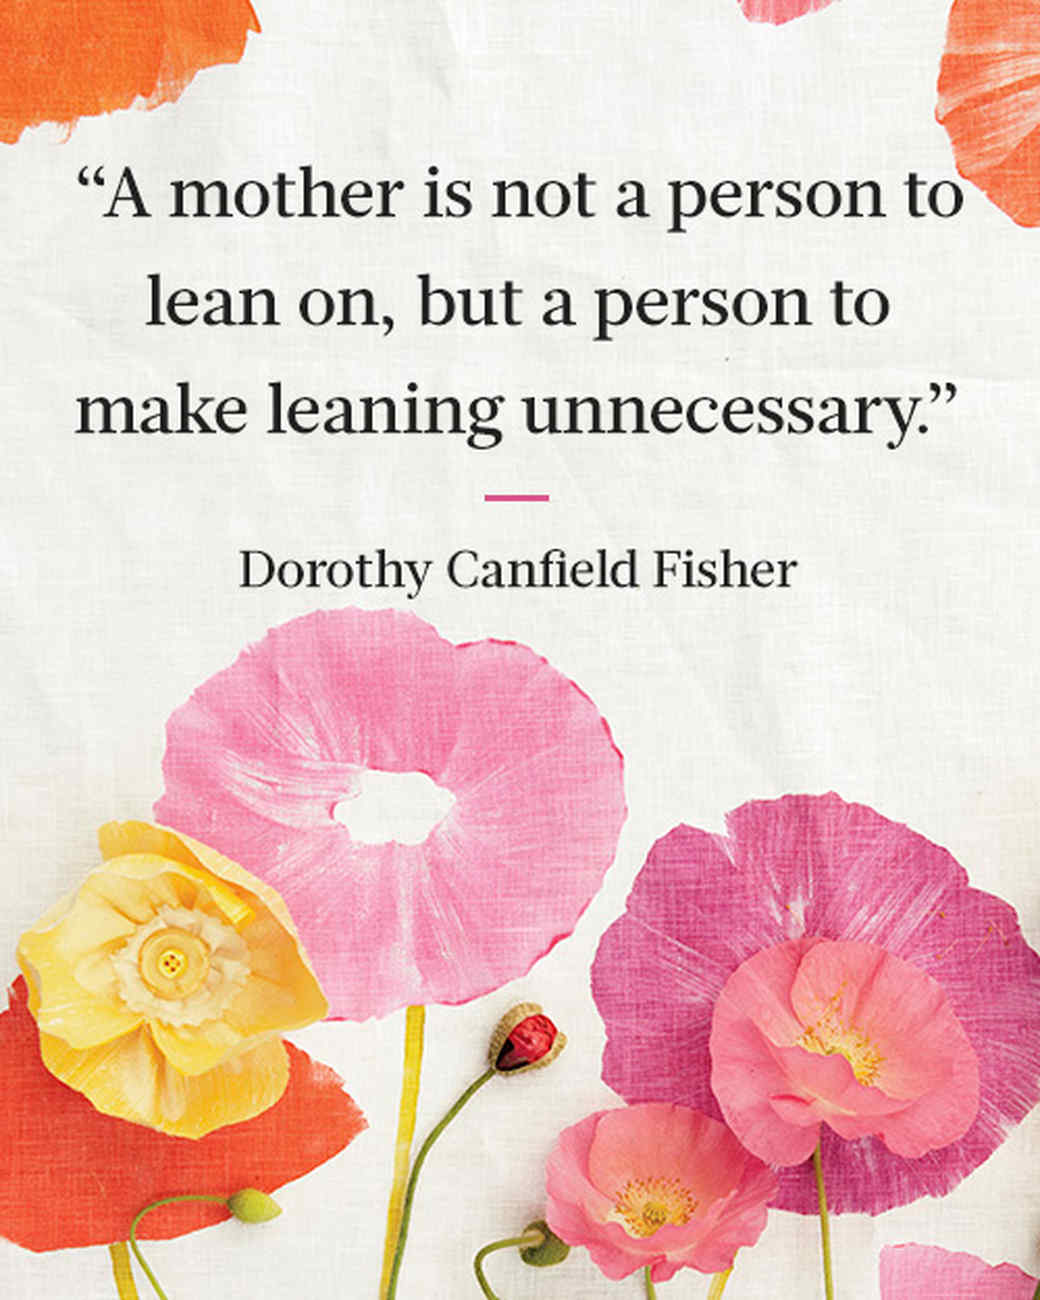 mothersdayquotes4-0315.jpg